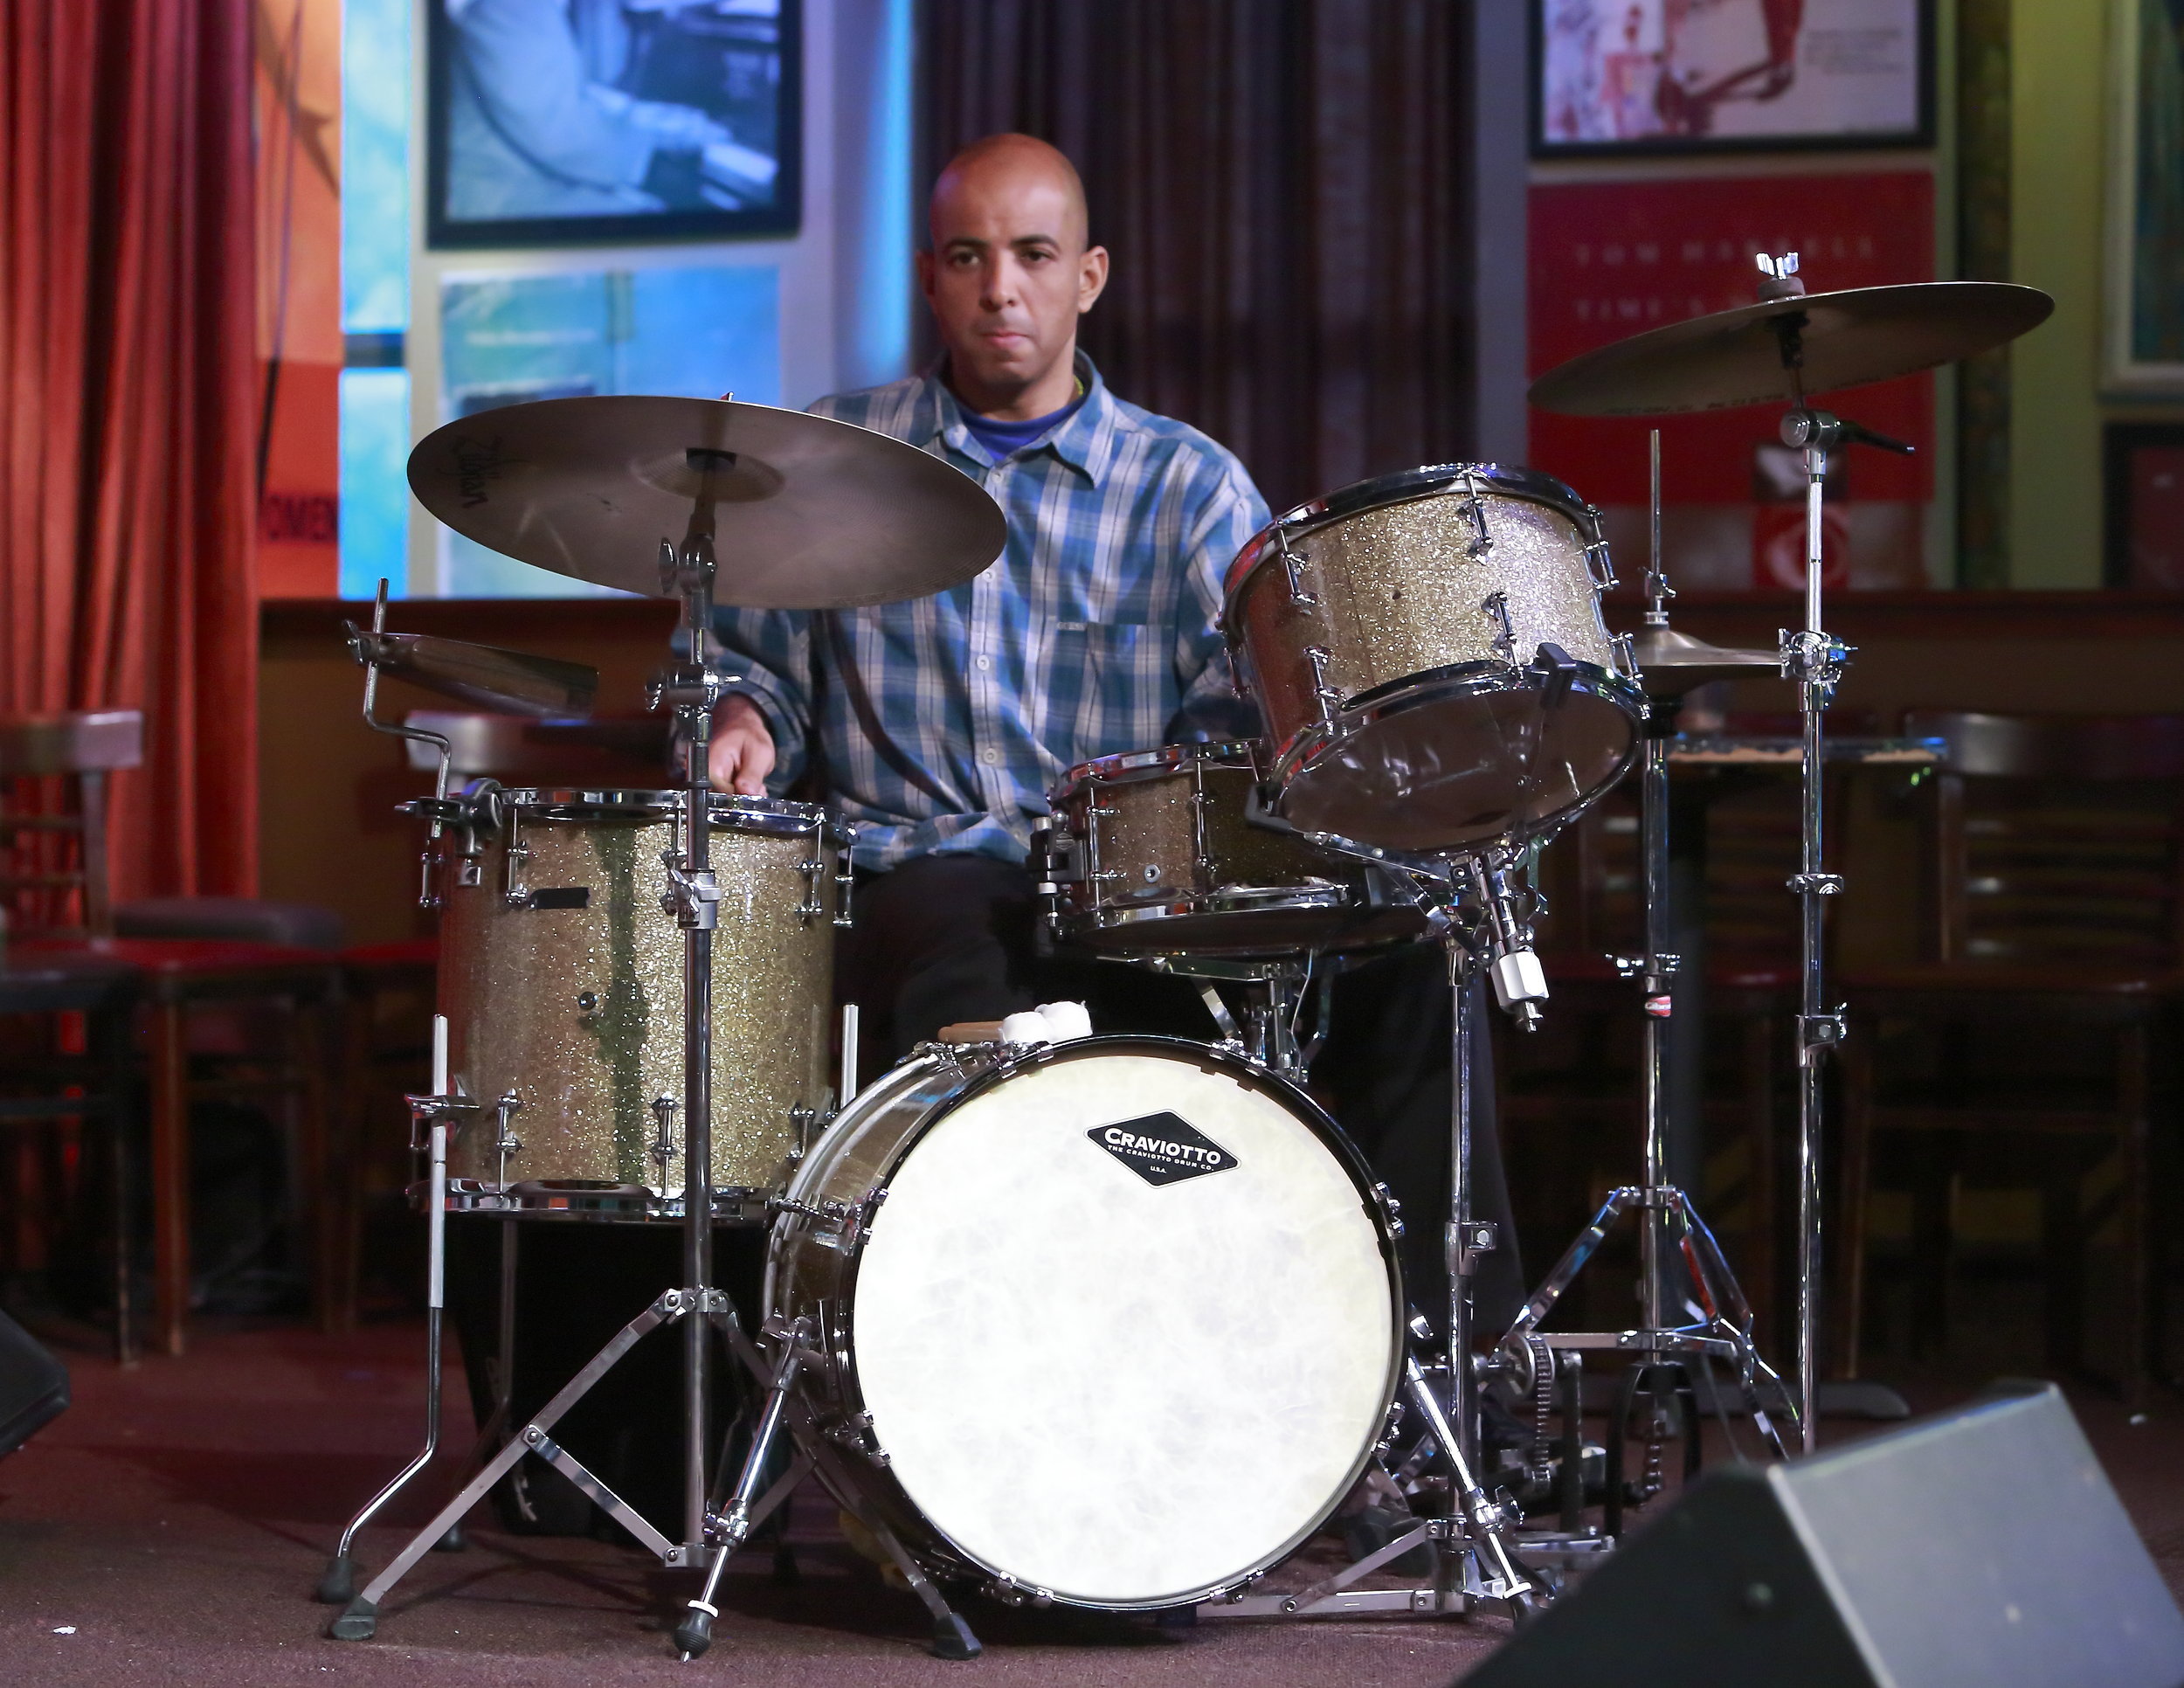 Rafael Monteagudo - Rafael Monteagudo (drummer/percussionist) arrived in the US in 2000 from Havana, Cuba. His areas of focus include jazz, funk, fusion, Latin jazz, and Afro-Cuban. He grew up in a neighborhood in Havana that has produced some of the most famous Cuban musicians in music history.